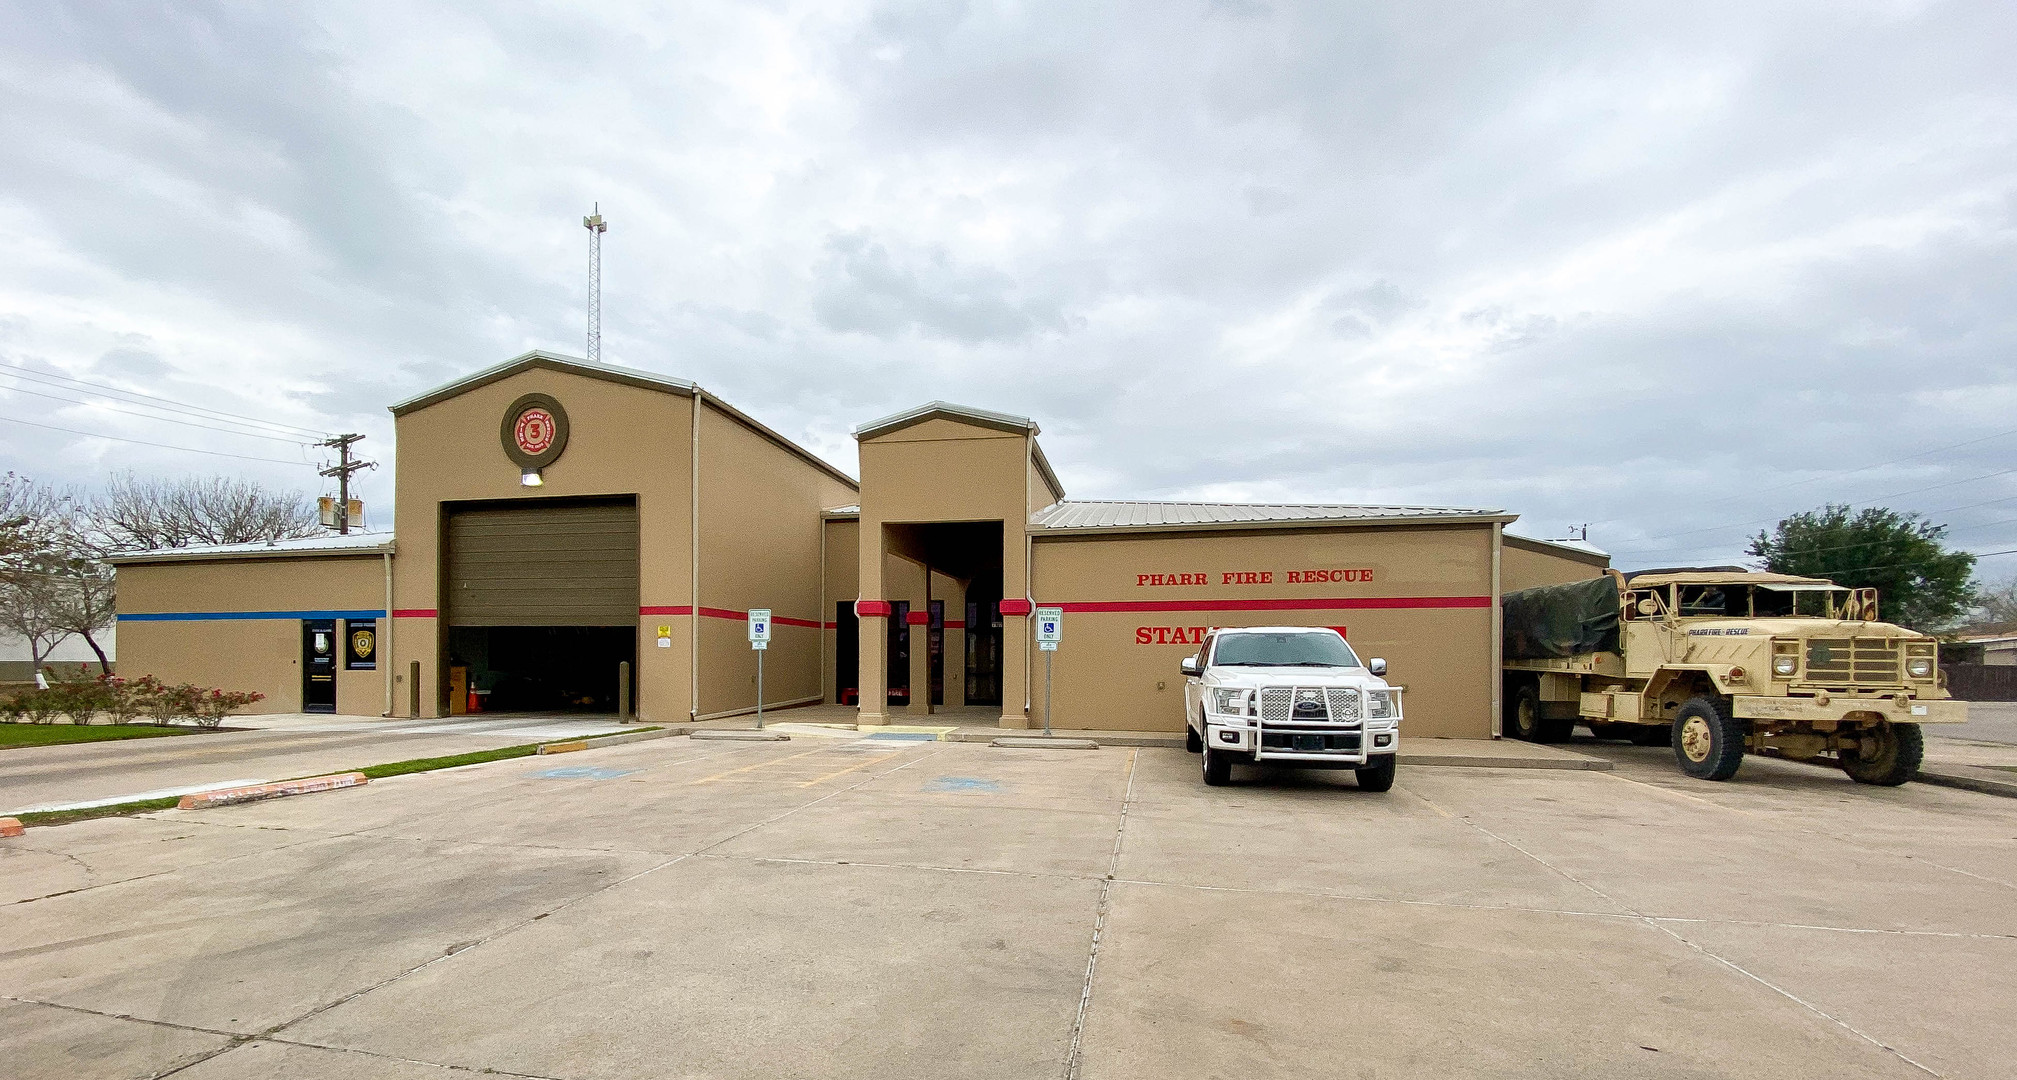 Pharr Fire Station No. 3